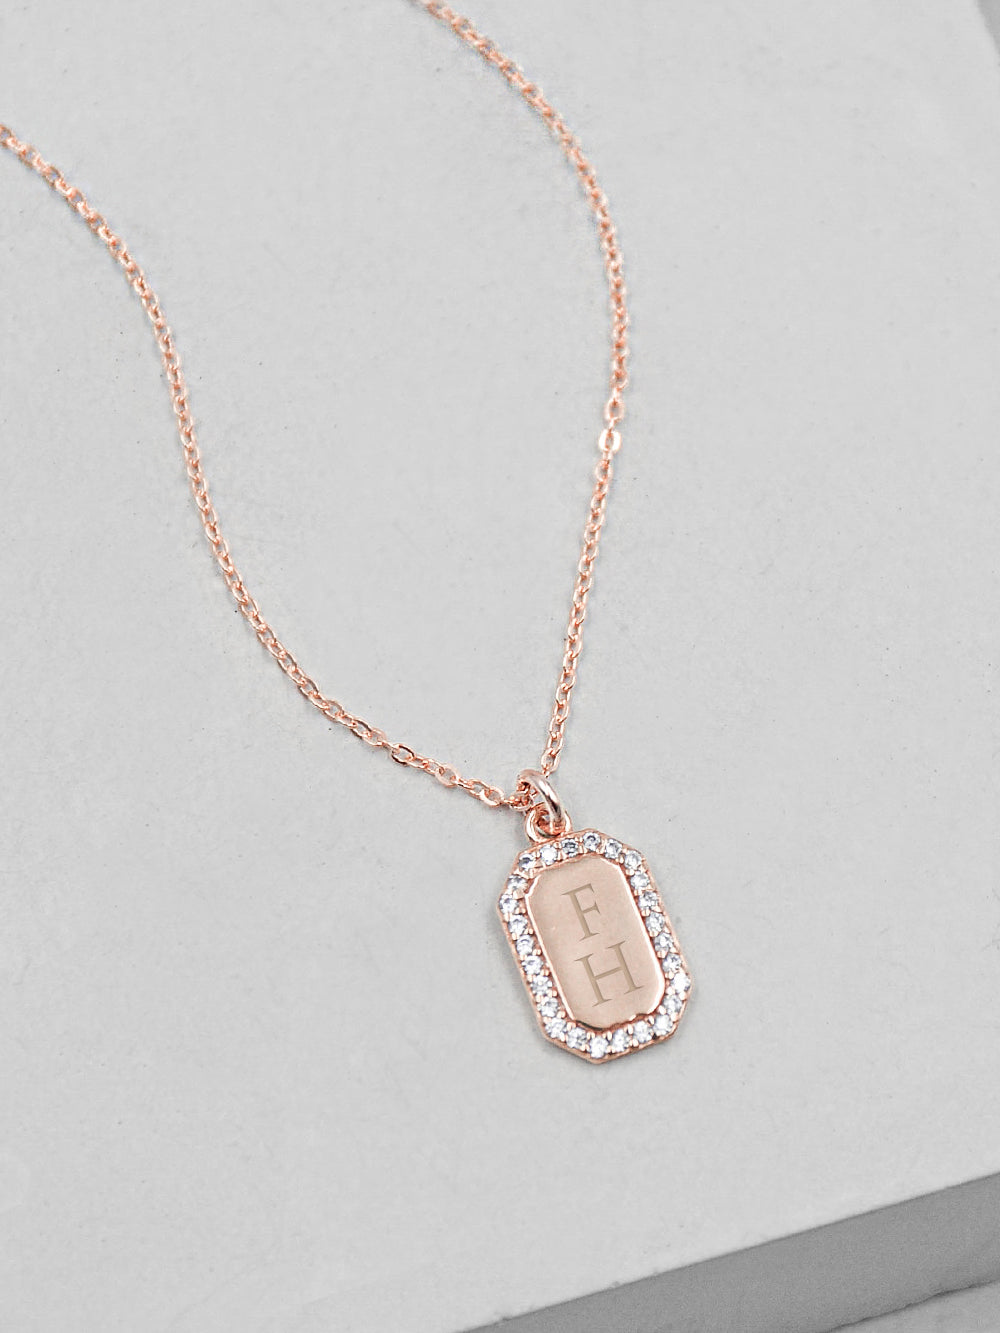 Rose Gold Mini Tag Initial Charm Necklace by The Faint Hearted Jewelry